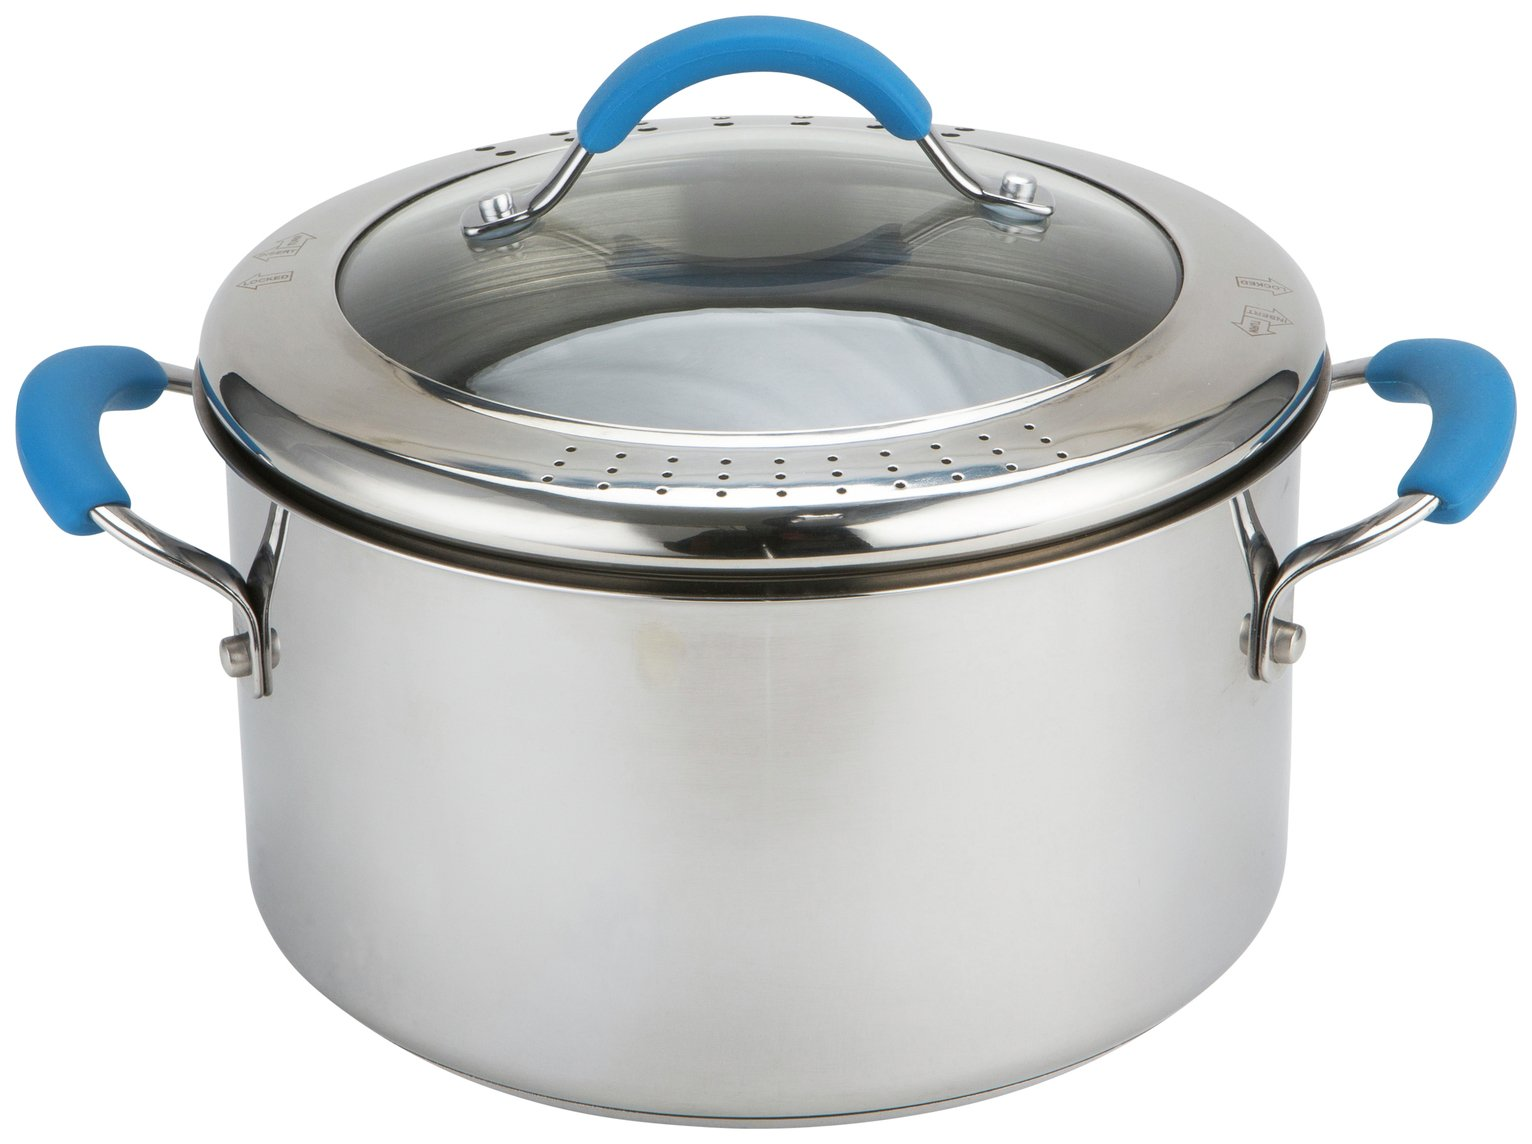 Joe Wicks Quick and Easy 24cm Stainless Steel Stock Pot